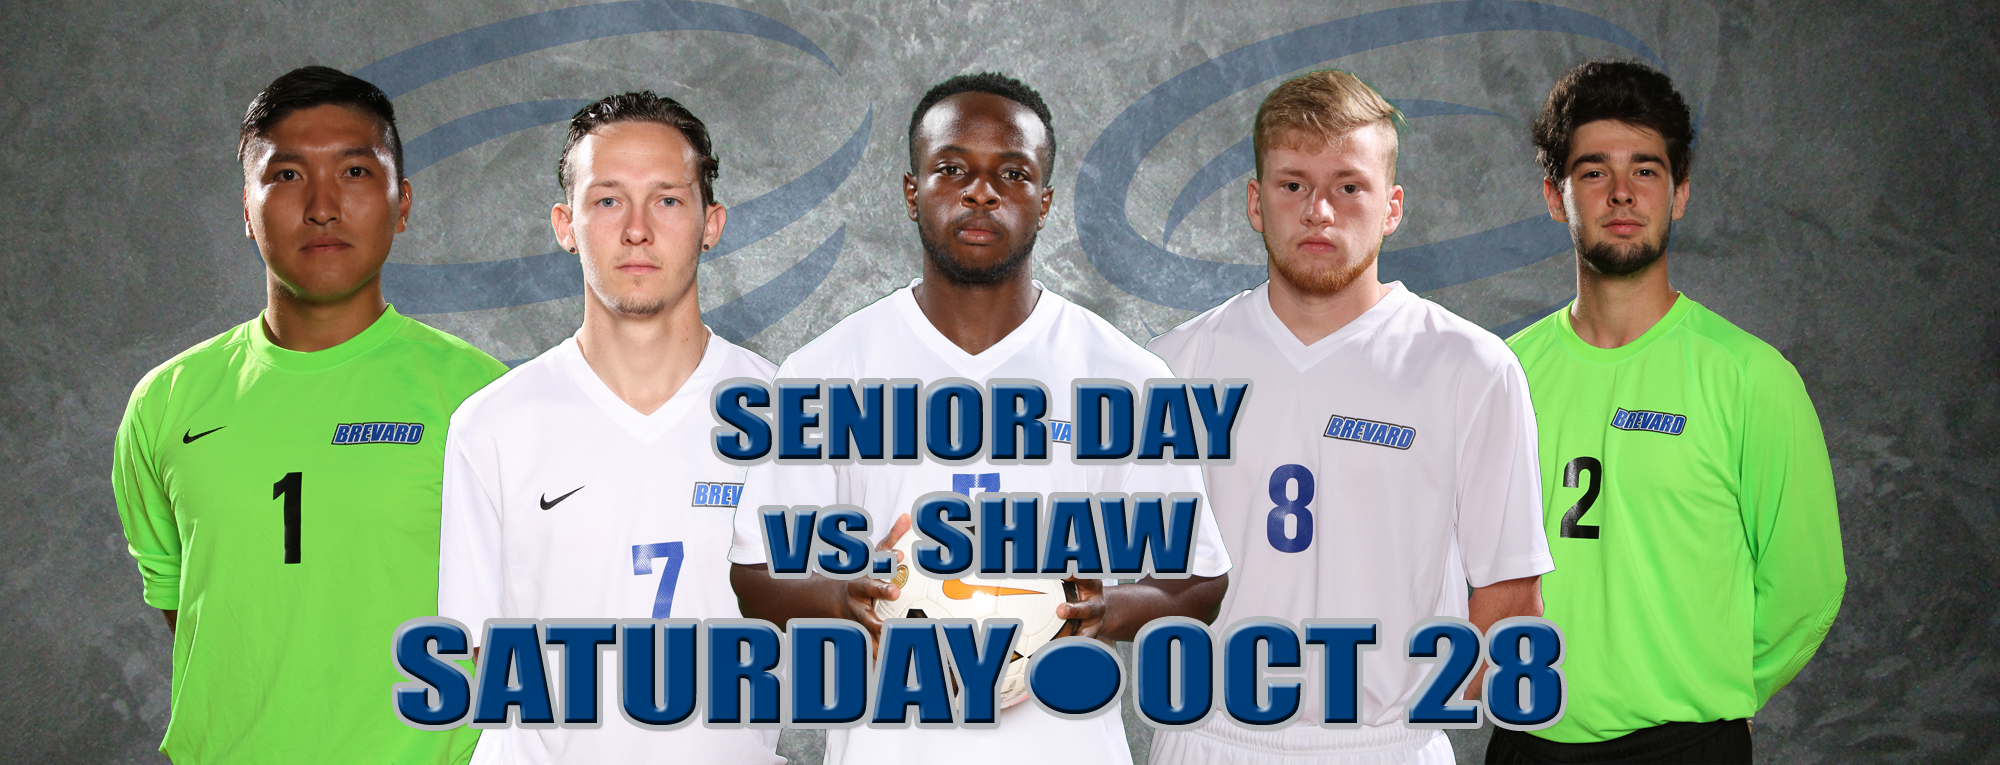 Brevard takes on Shaw in final match of the season